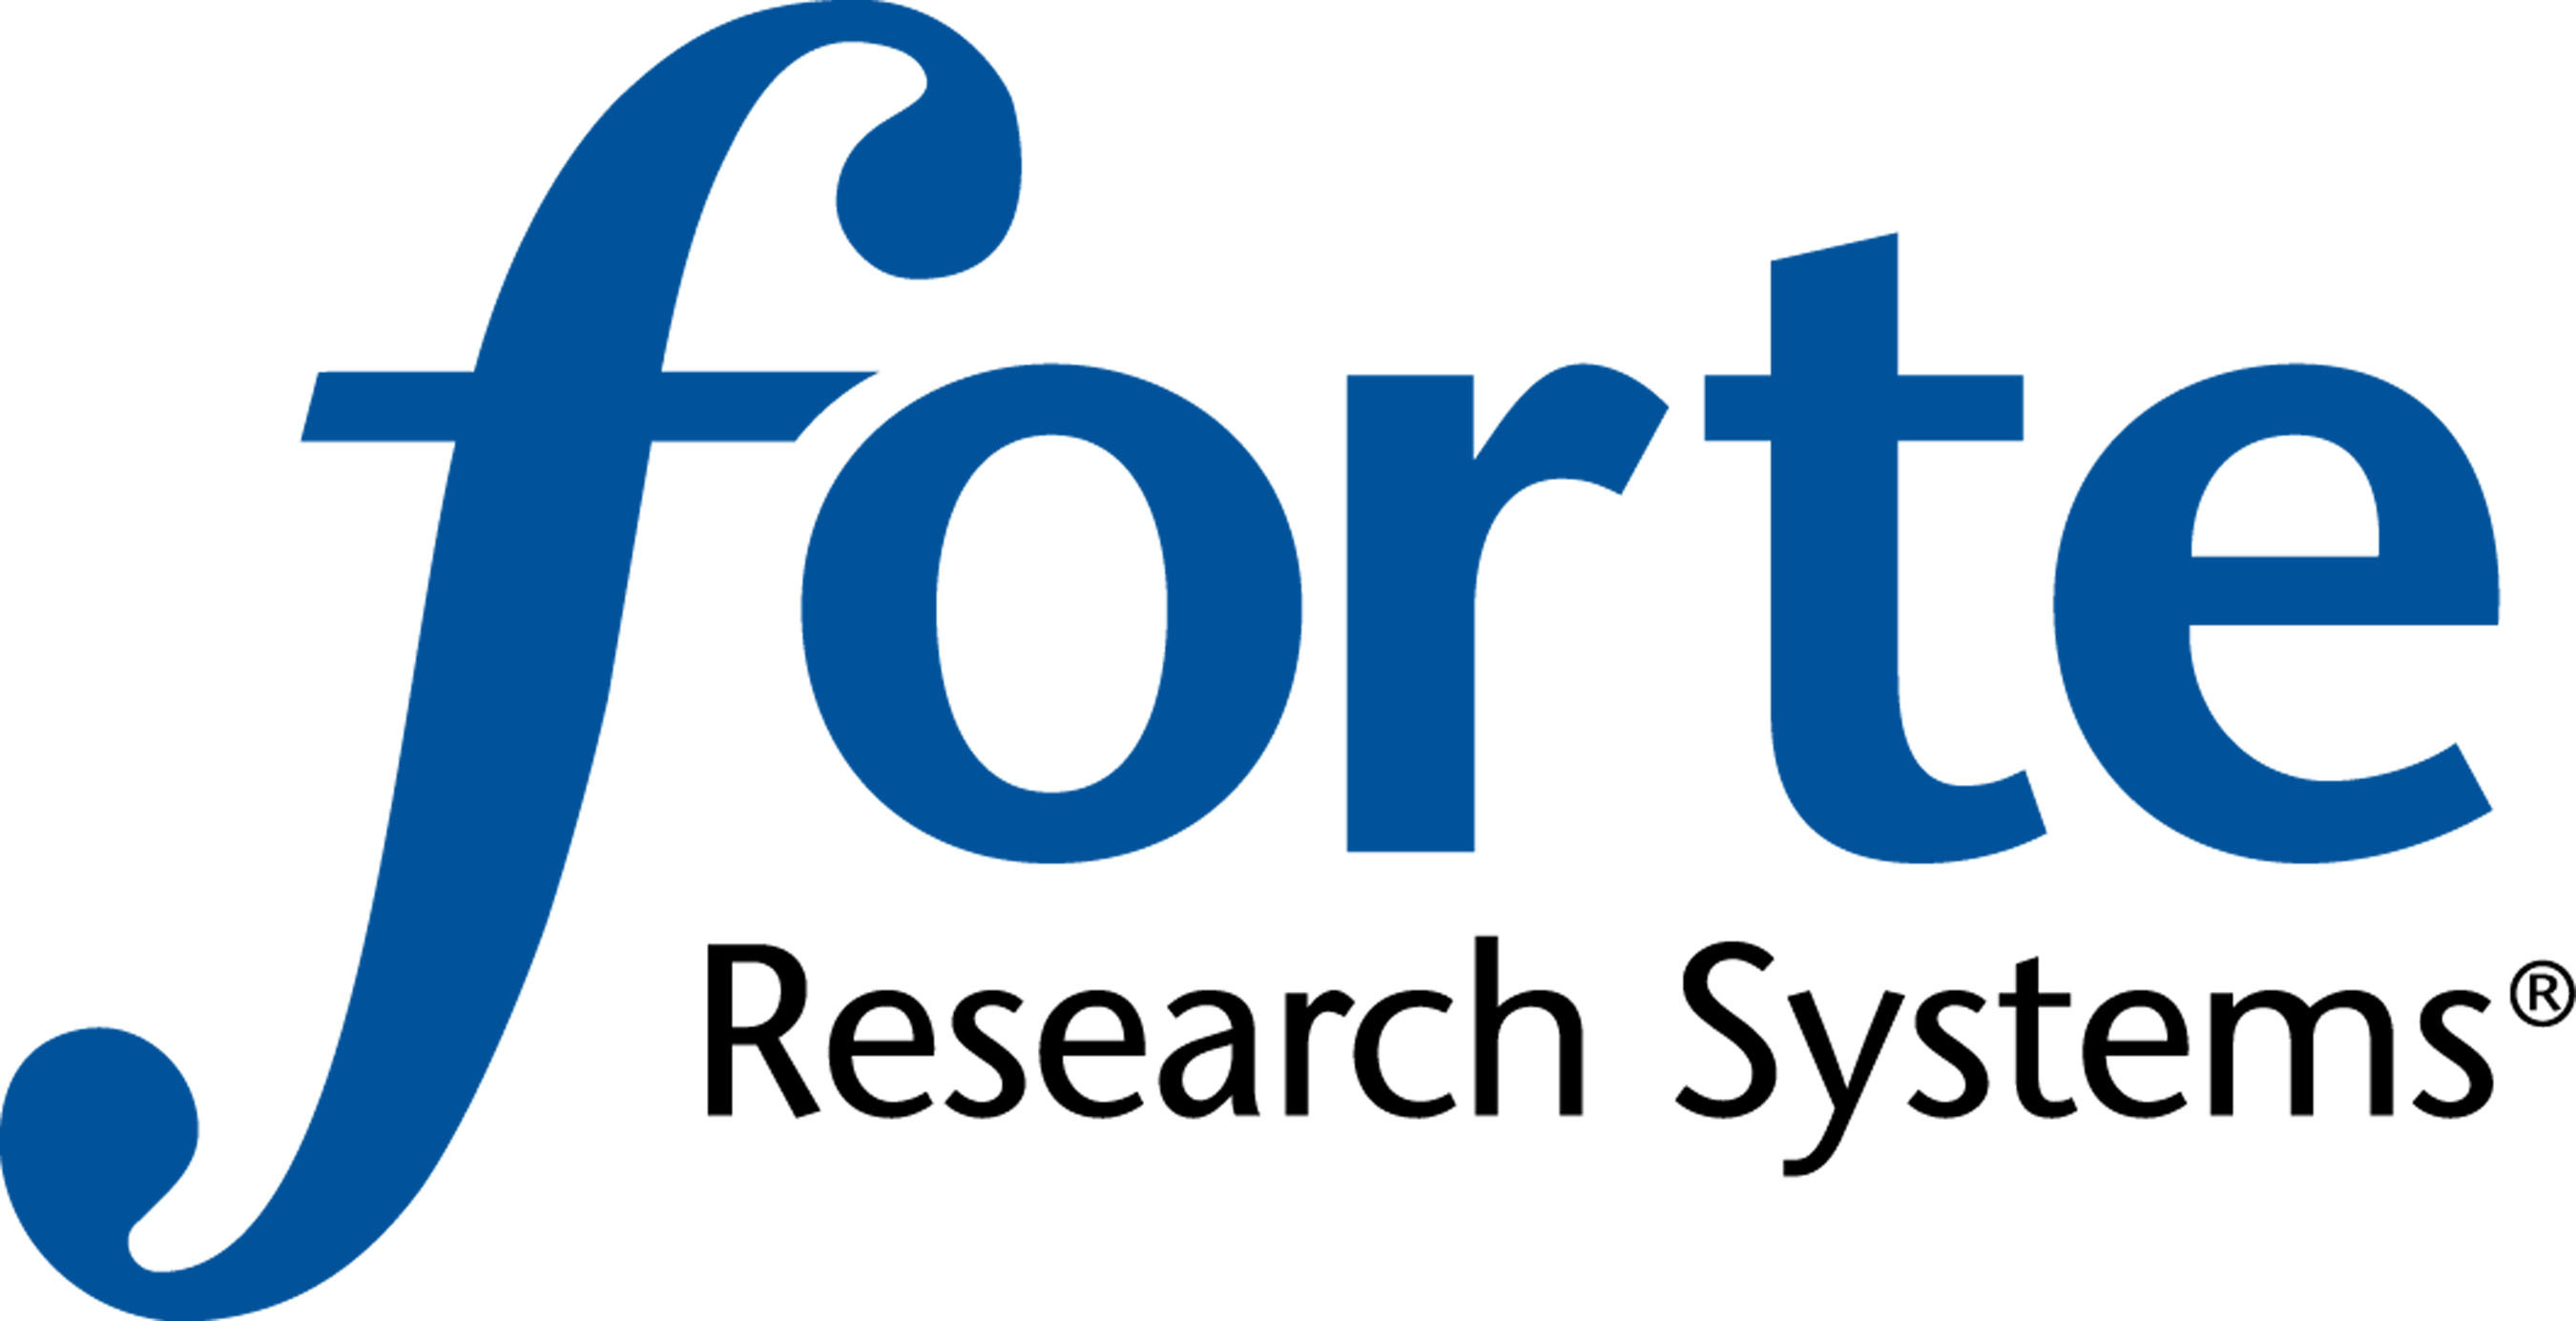 Forte Research Systems logo.